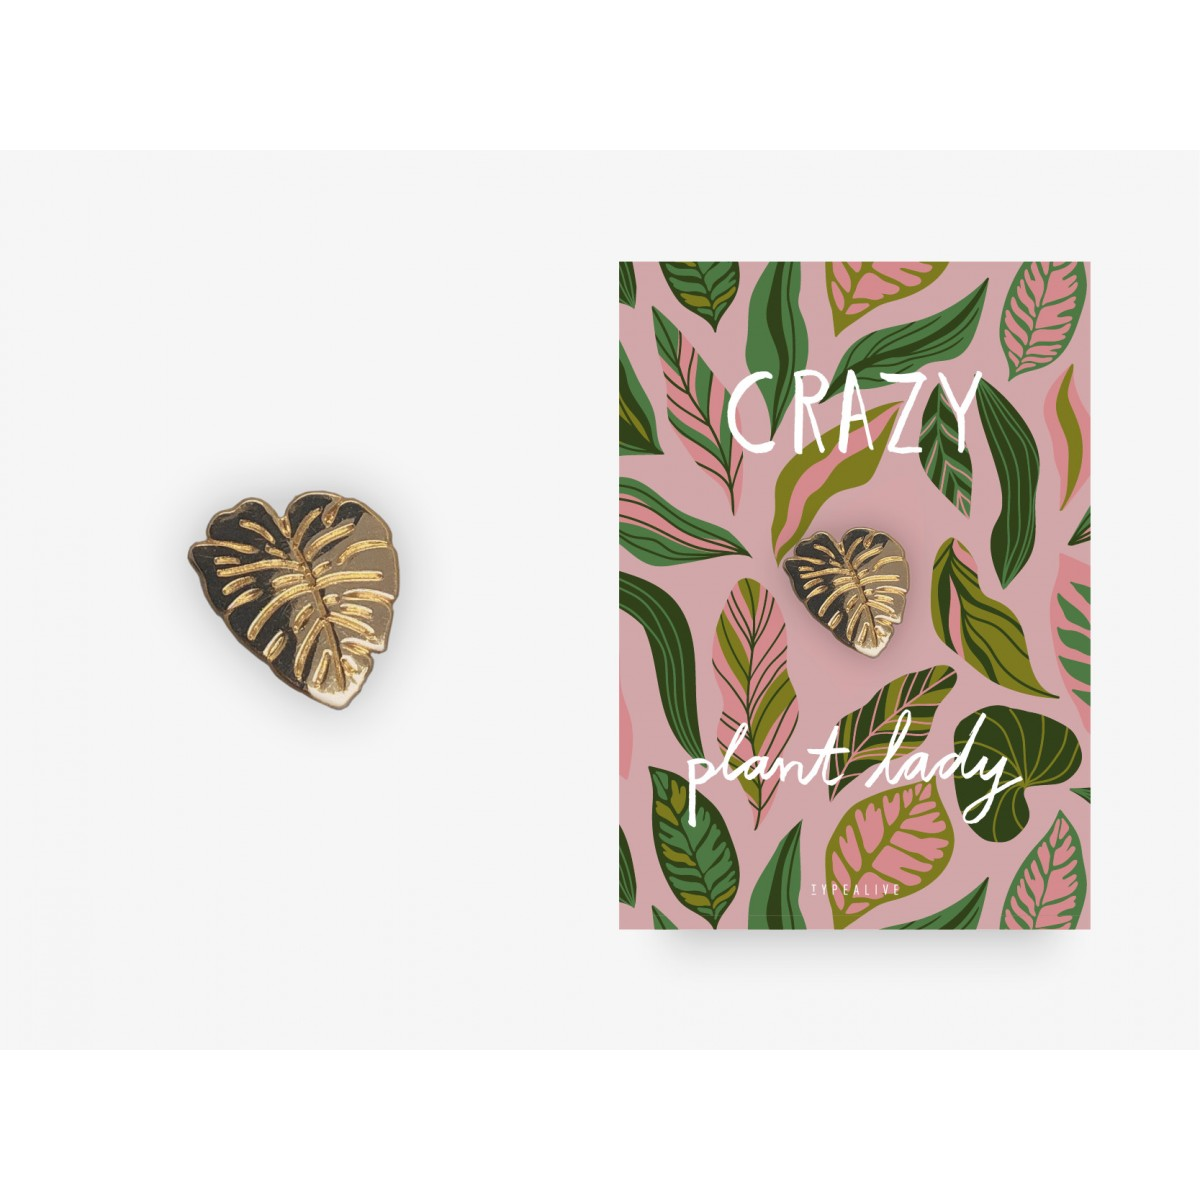 typealive / Pin / Crazy Plant Lady